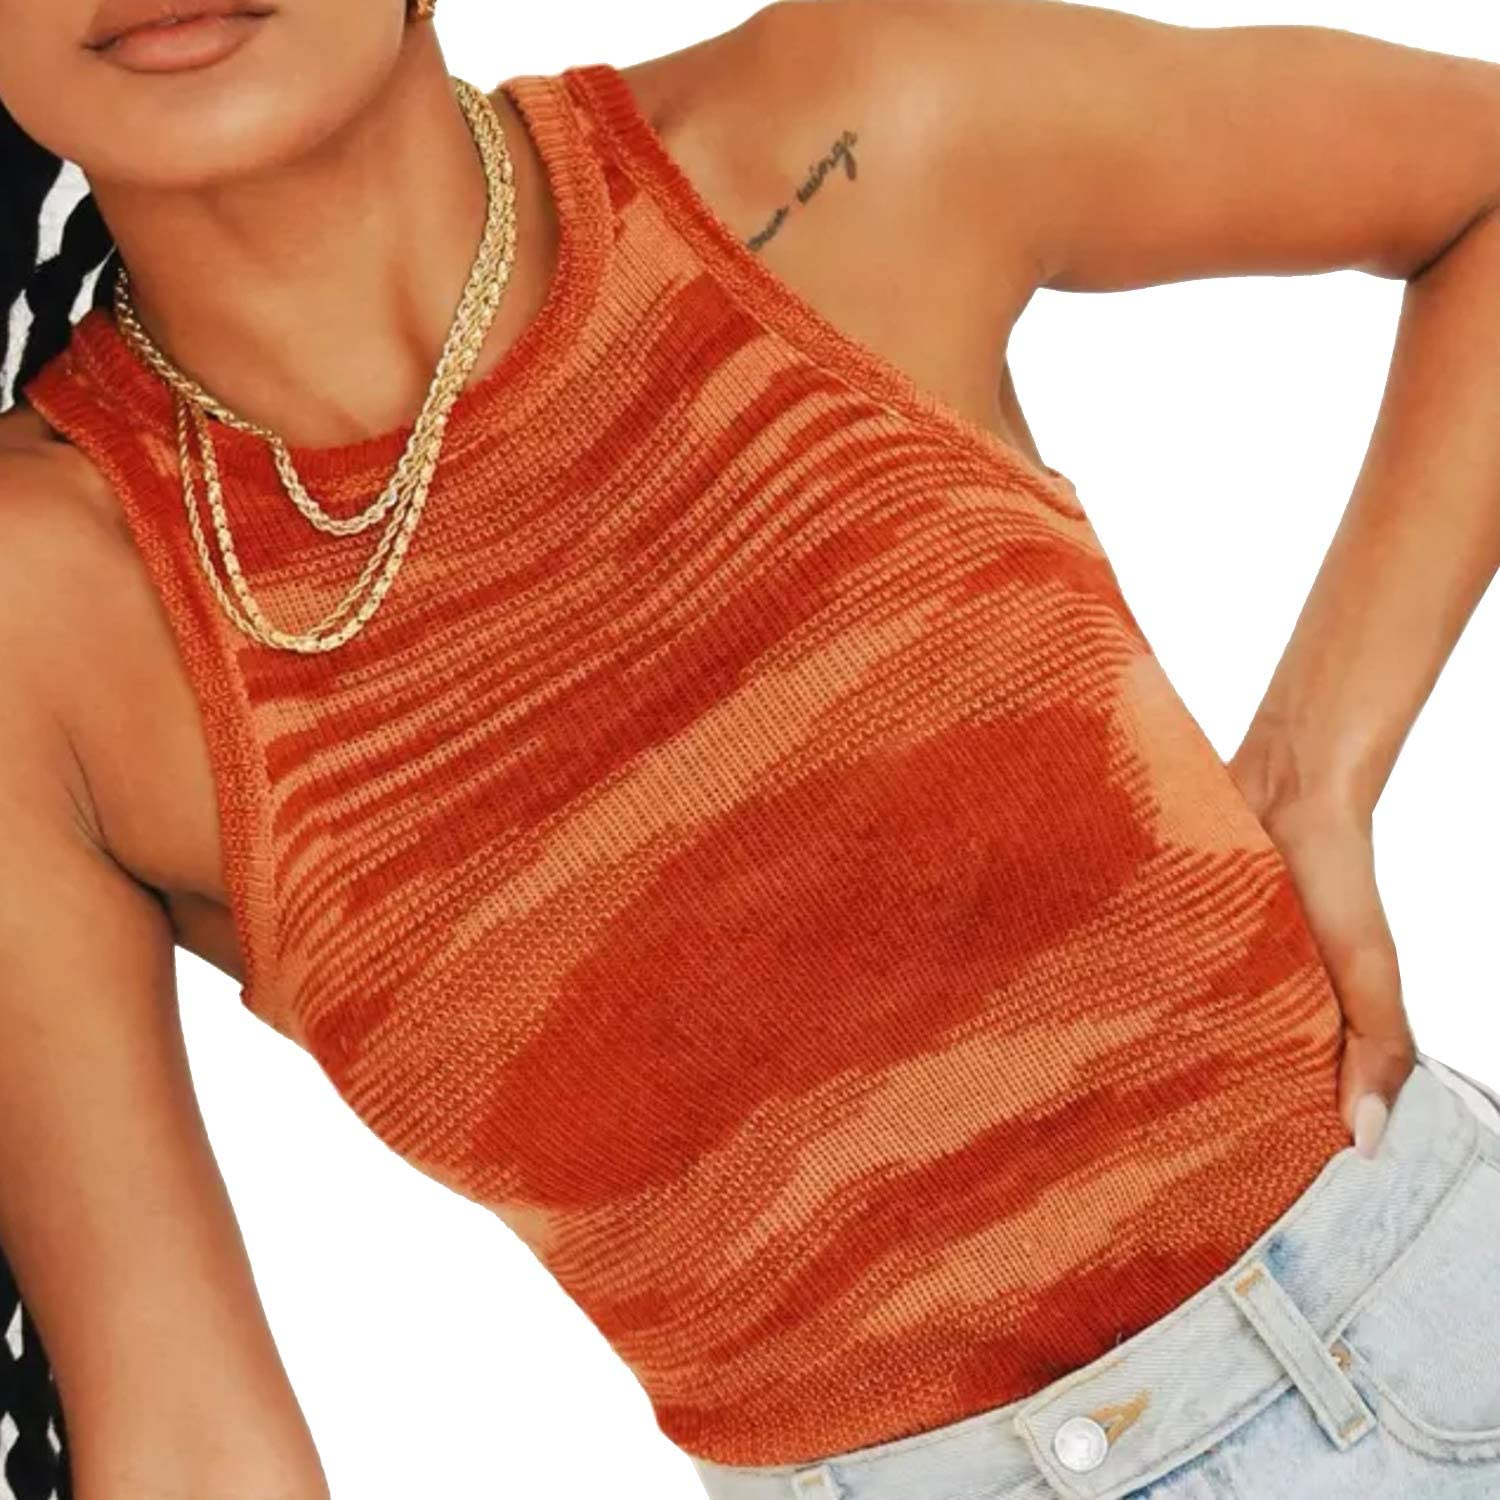 Dwnval Y2K Knit Crop Top for Women Sleeveless Off Shoulder Cami Basic Cropped Casual Crewneck Racerback Slim Tank Tops